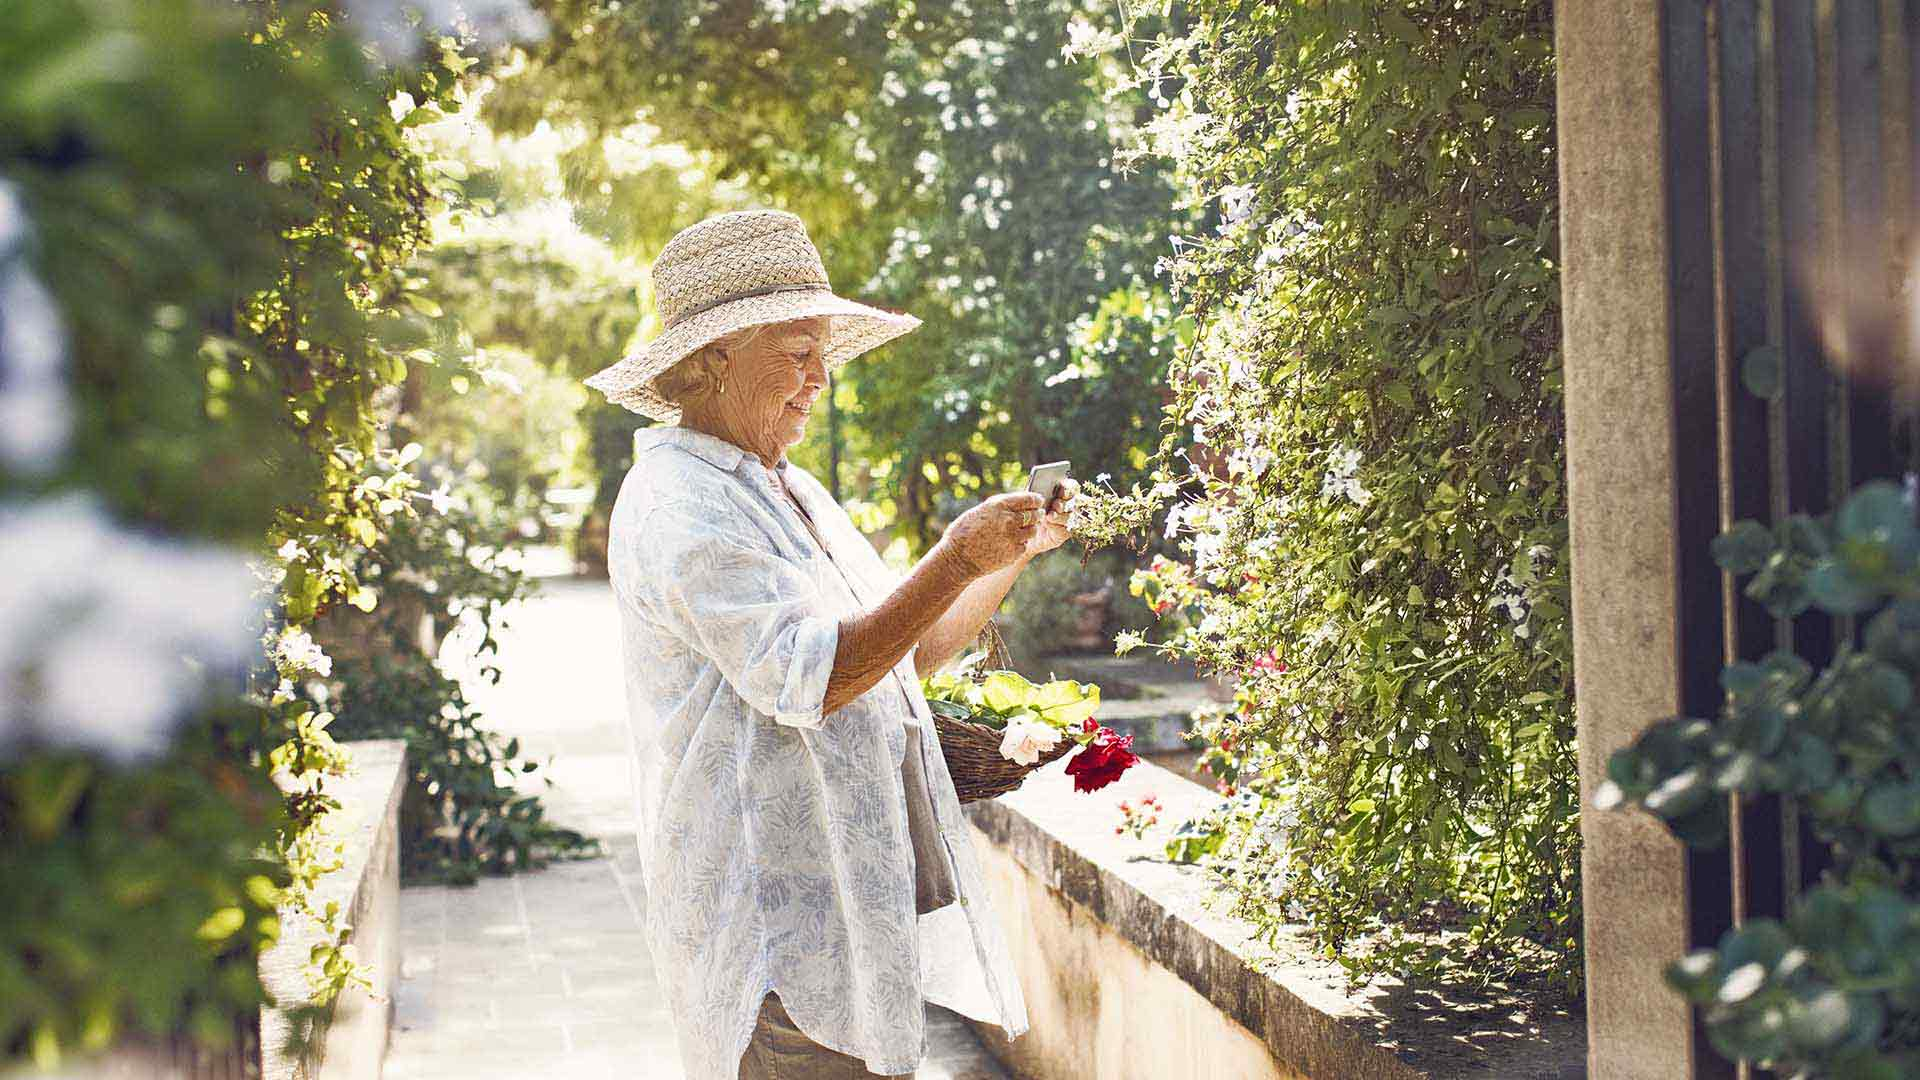 Elderly woman picking flowers in the garden